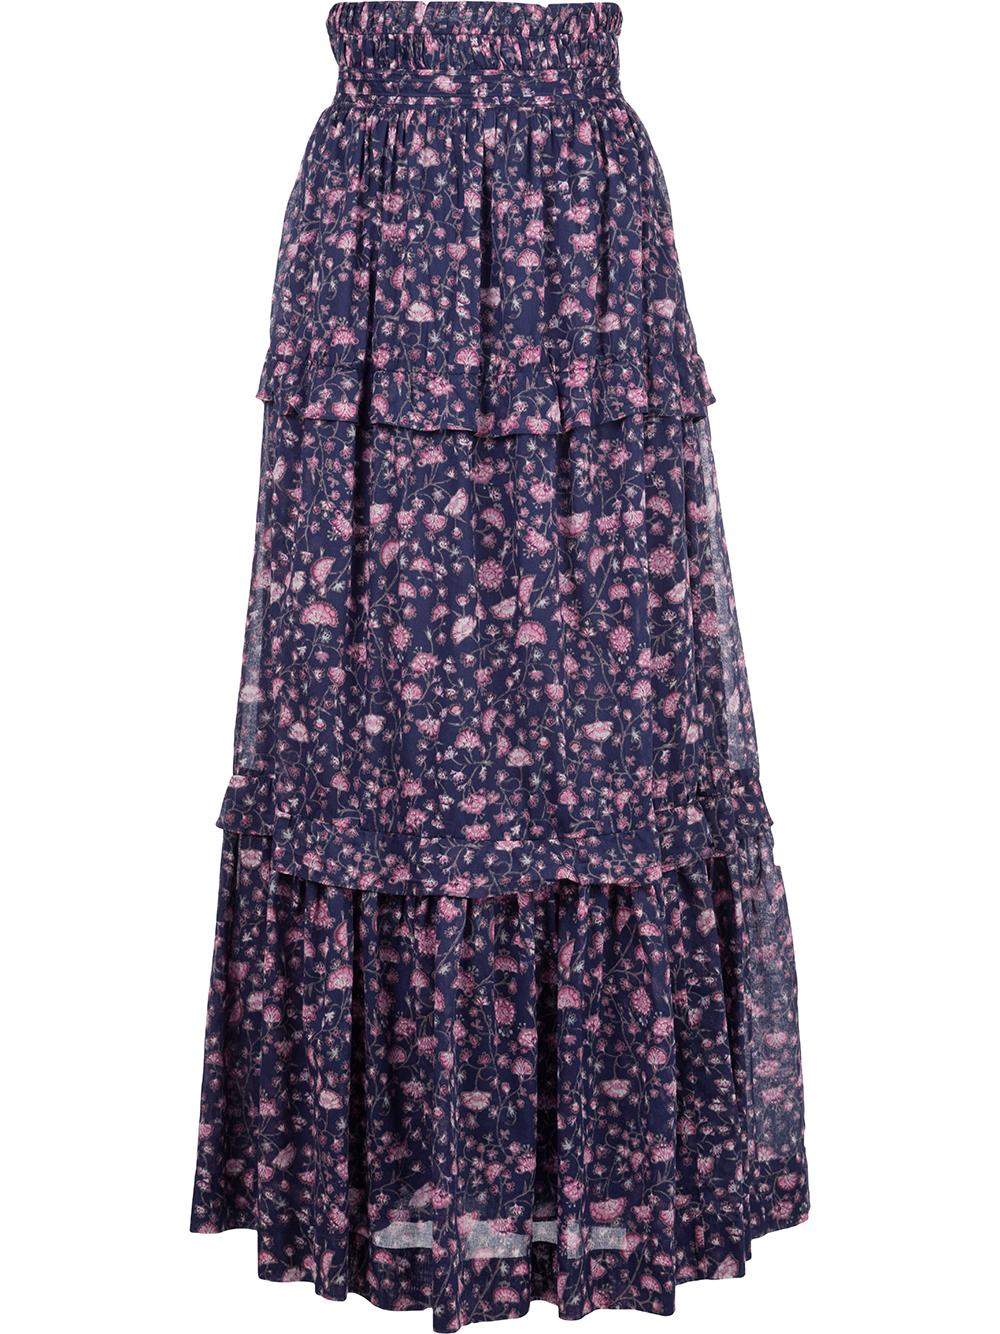 Printed Cotton Tiered Skirt Item # LINEKA